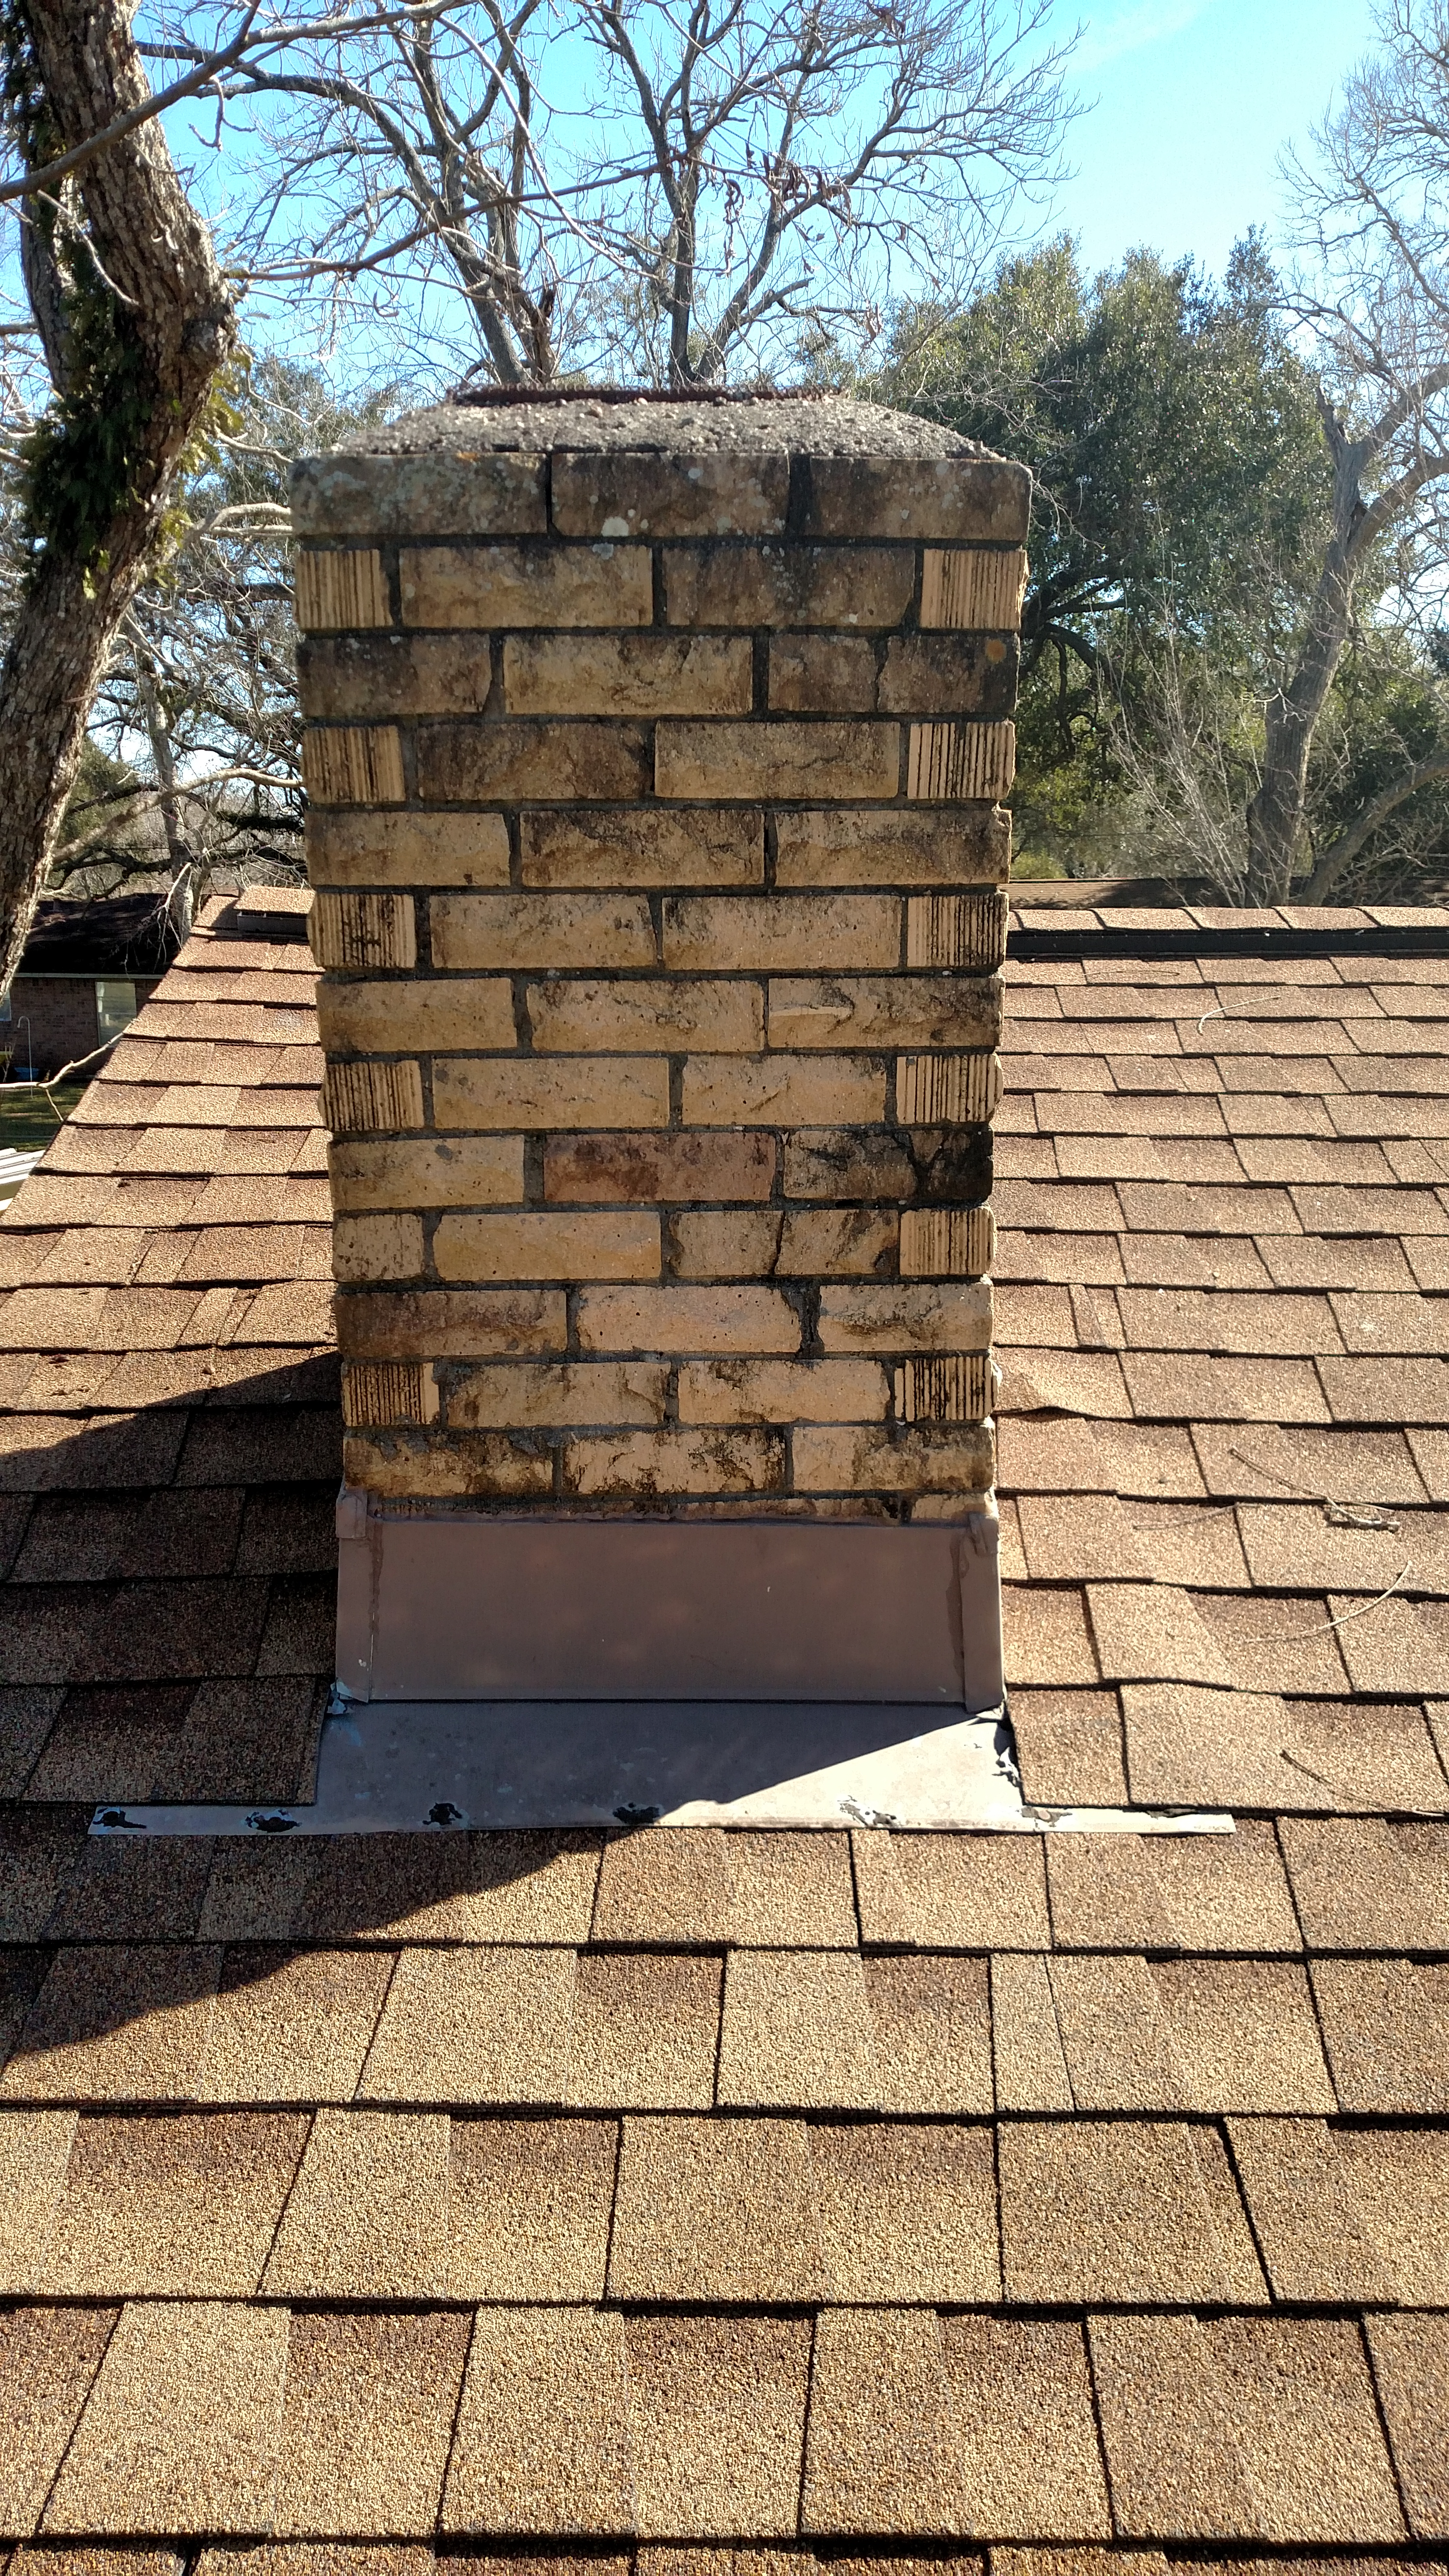 Advanced Residential Roof Inspection Course Page 4